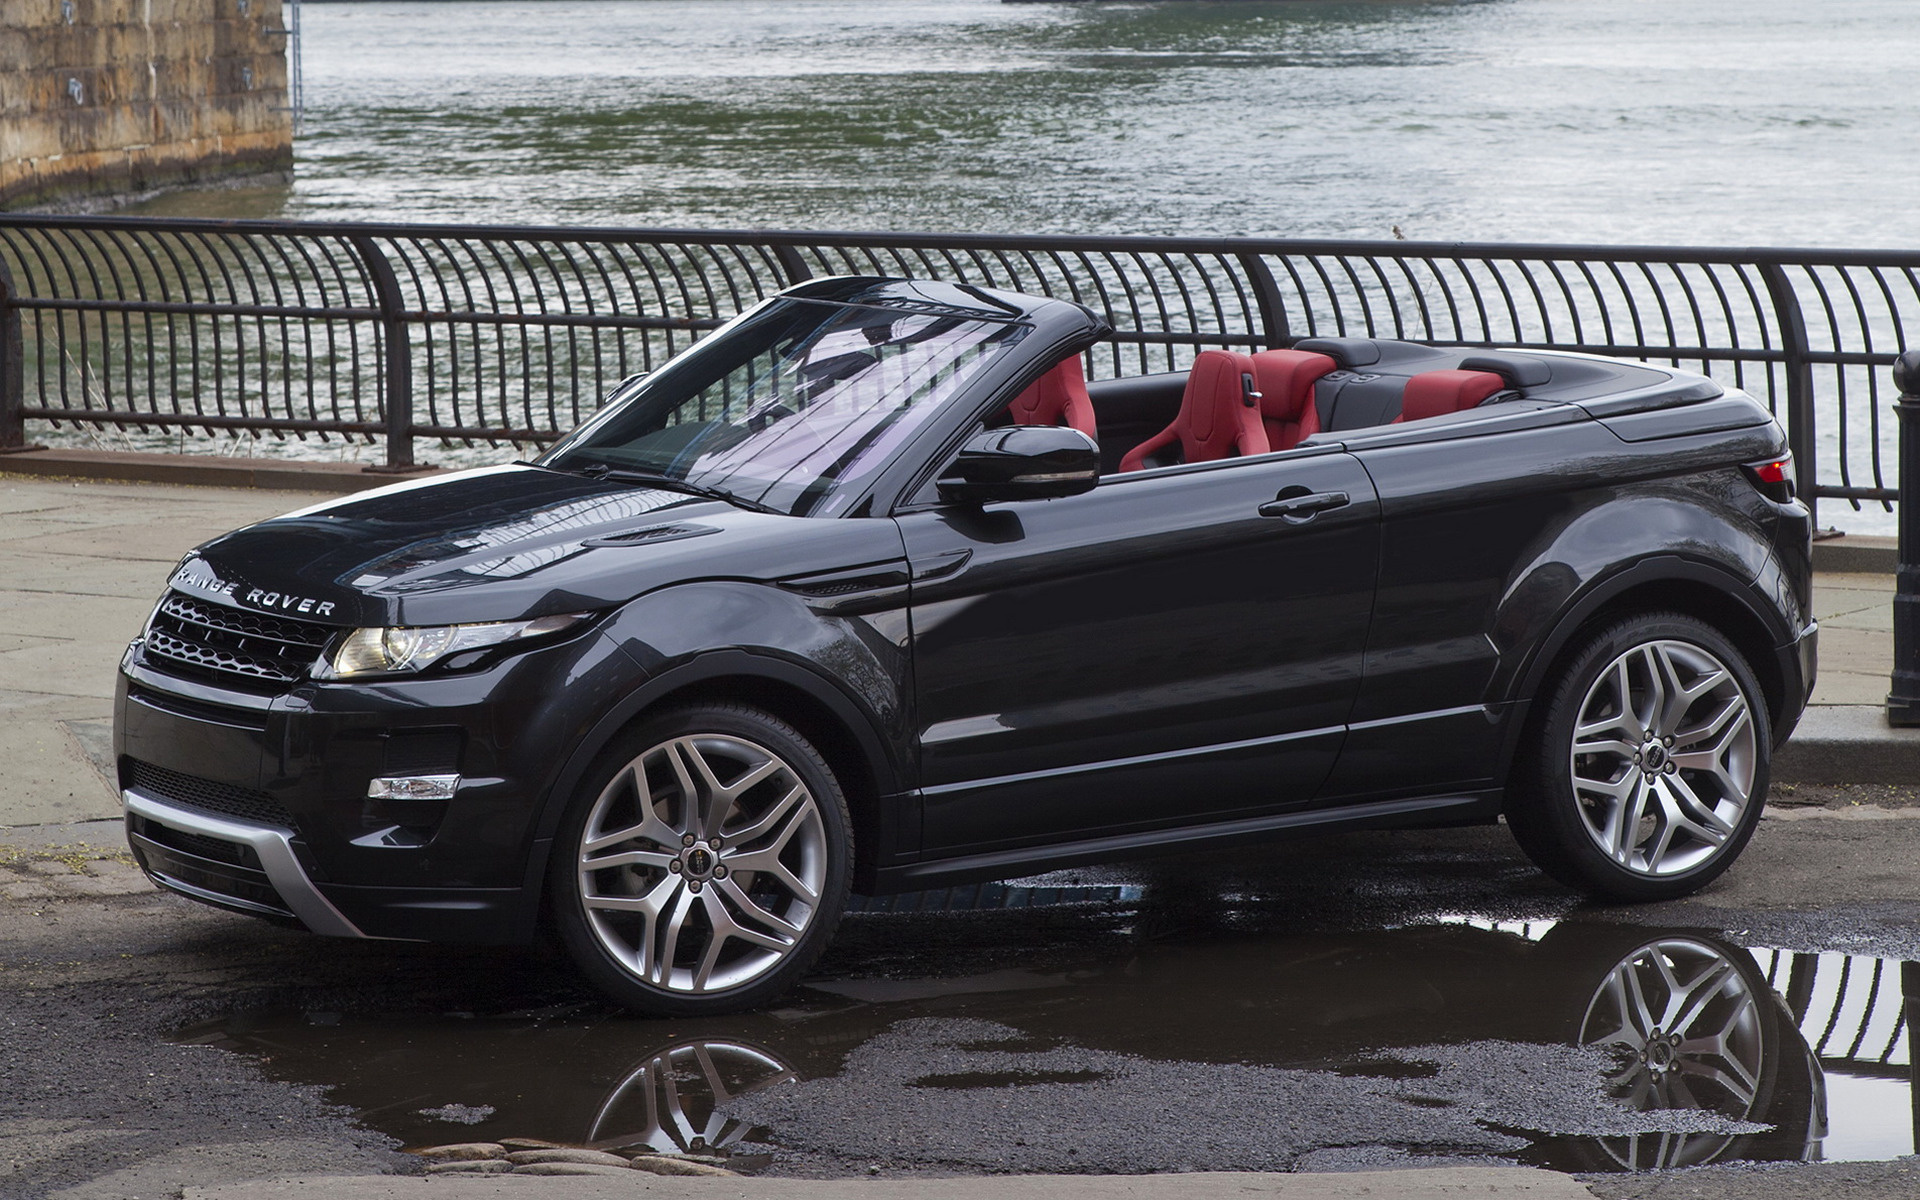 2012 Range Rover Evoque Convertible Concept Wallpapers And Hd